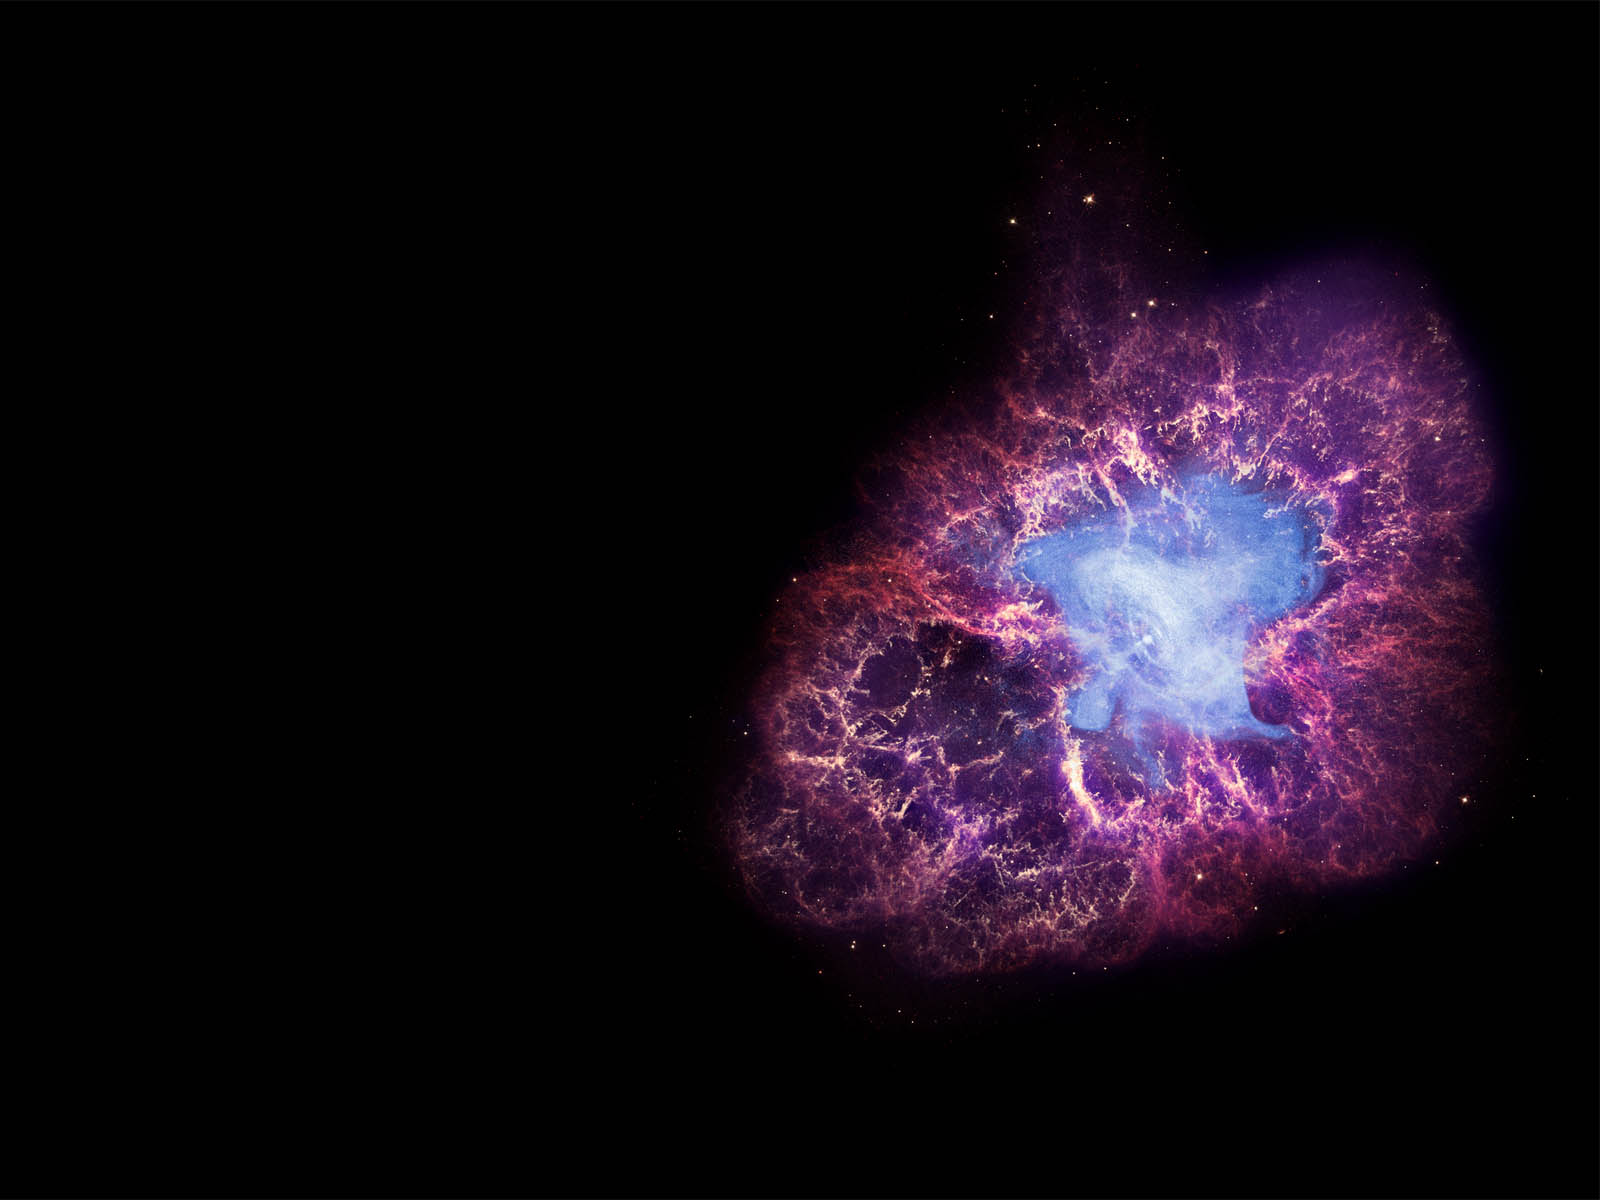 wallpaper: Crab Nebula